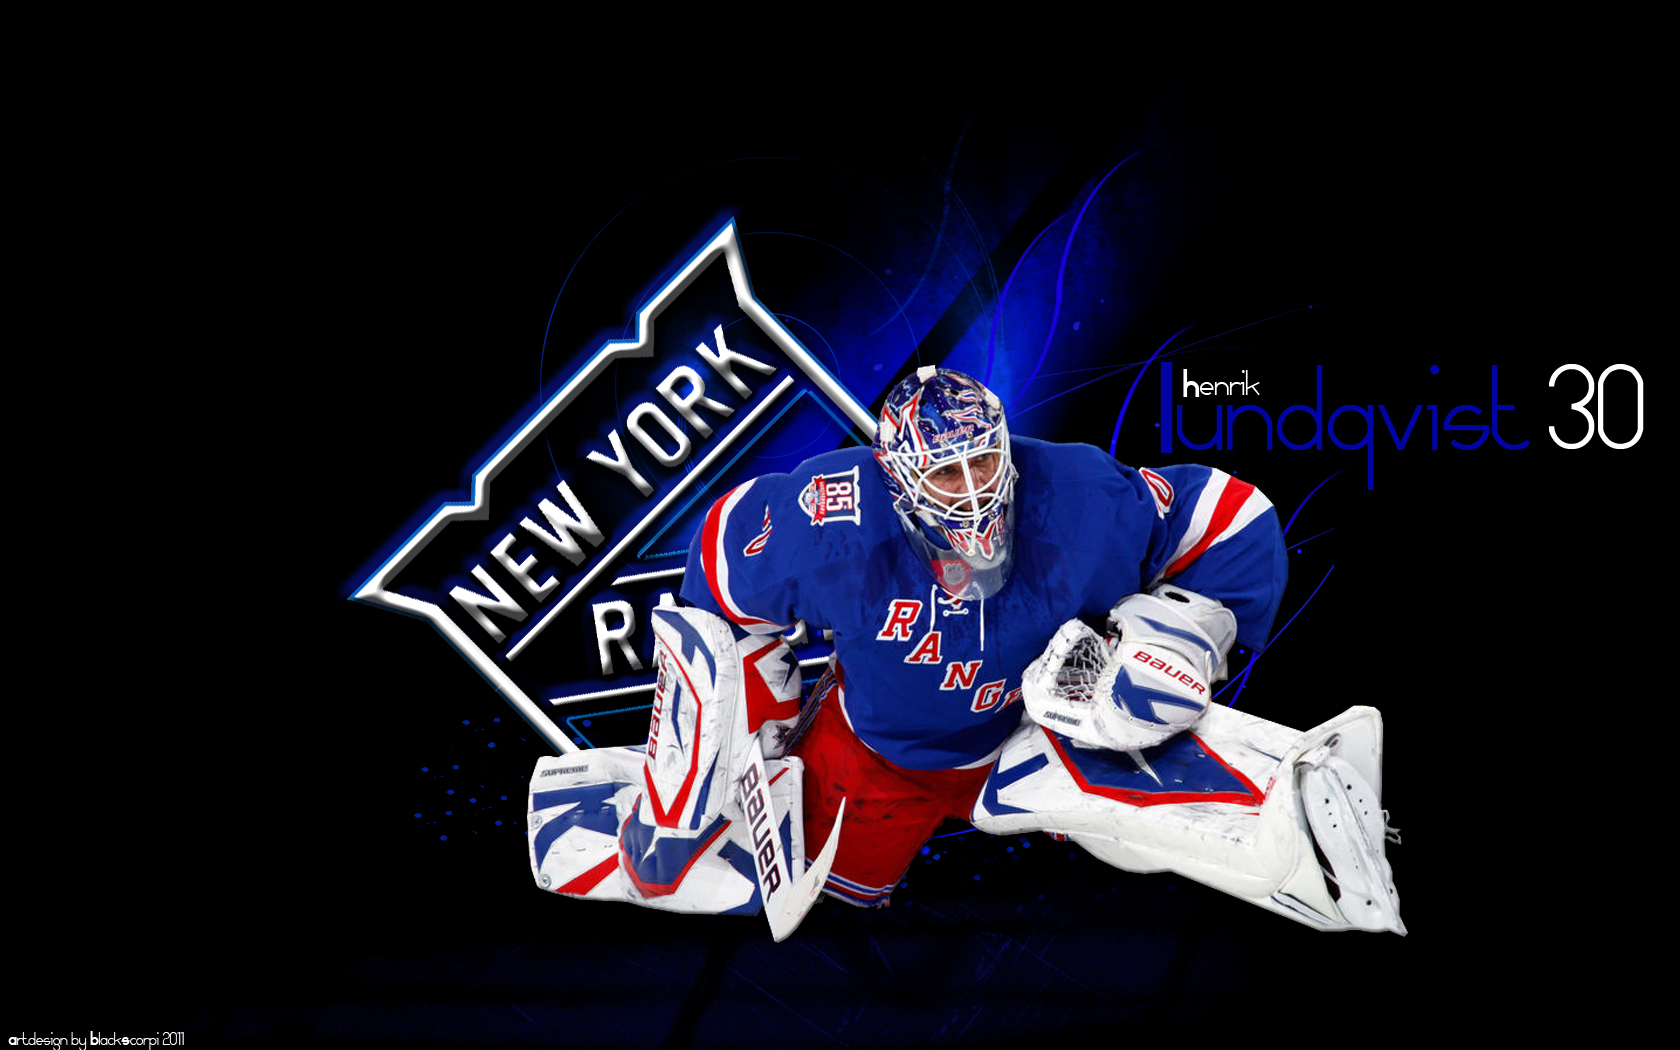 Ny Rangers Wallpaper Iphone 5 Wallpapersafari